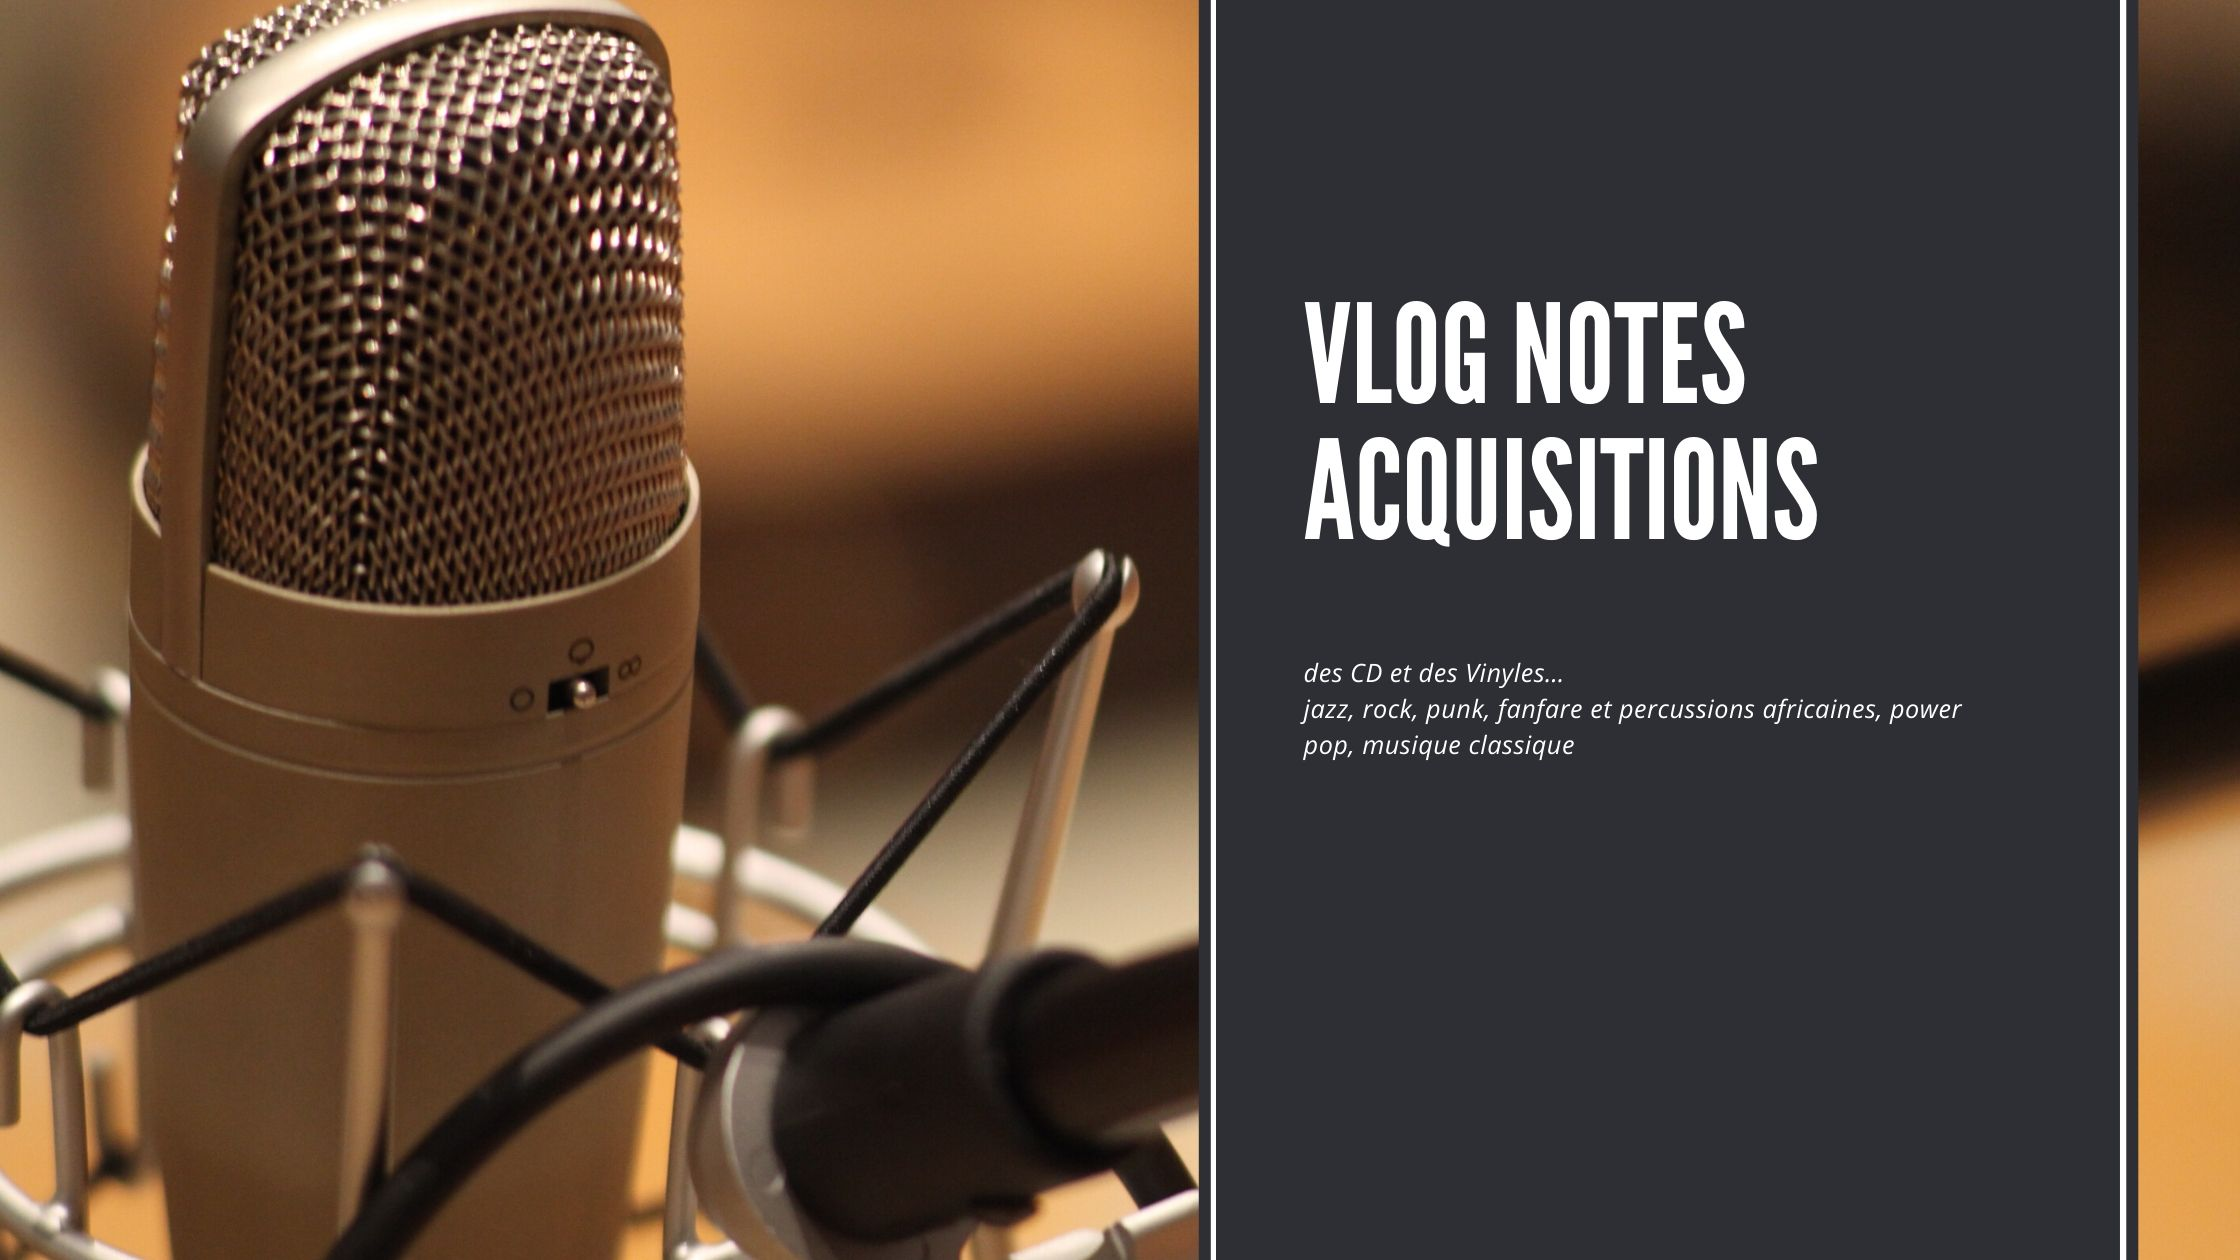 Un Vlog Notes acquisitions de CD et Vinyles